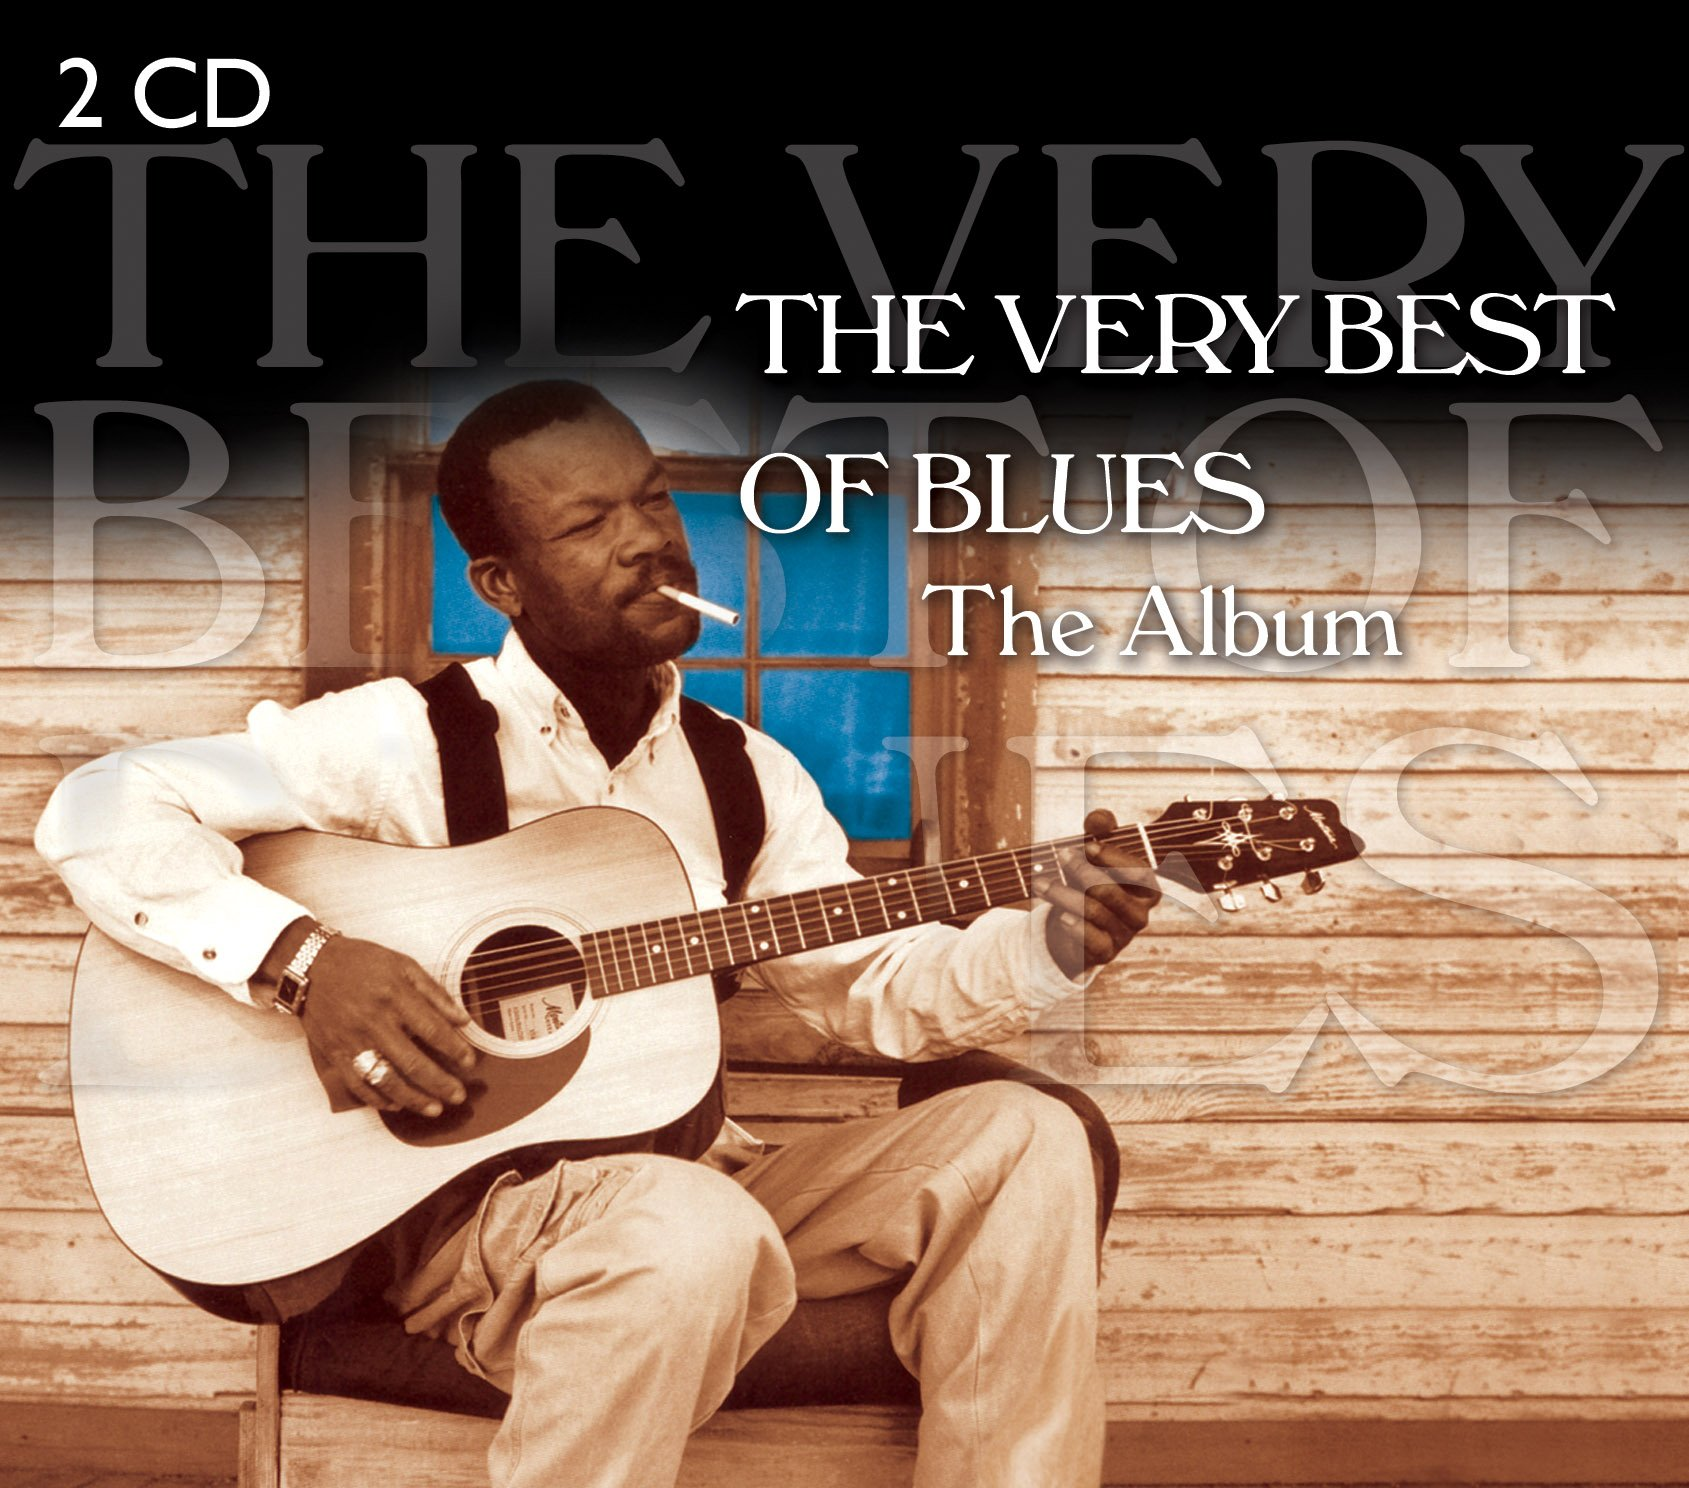 VA-The Very Best Of Blues The Album-2CD-FLAC-2014-NBFLAC Download